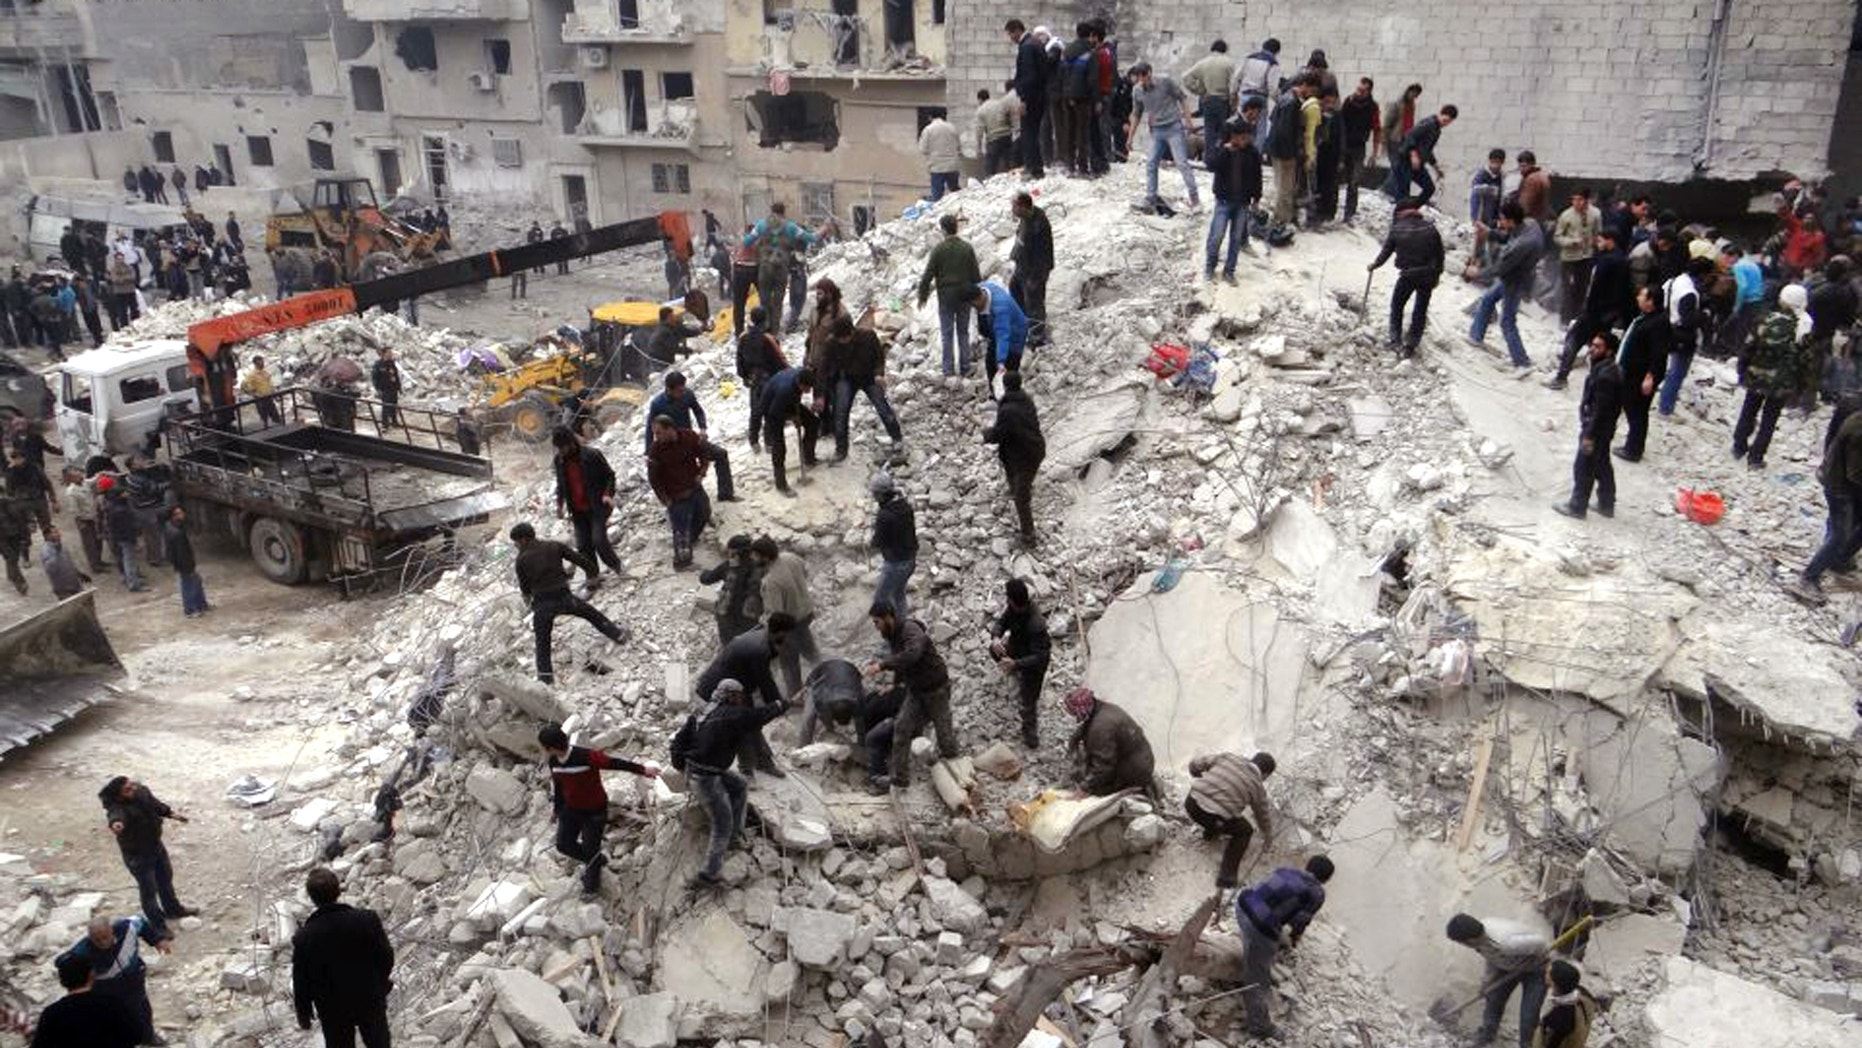 Feb. 3, 2013 - This citizen journalism image provided by Aleppo Media Center, shows people searching through the debris of destroyed buildings after airstrikes hit the neighborhood of Eastern Ansari, in Aleppo, Syria.